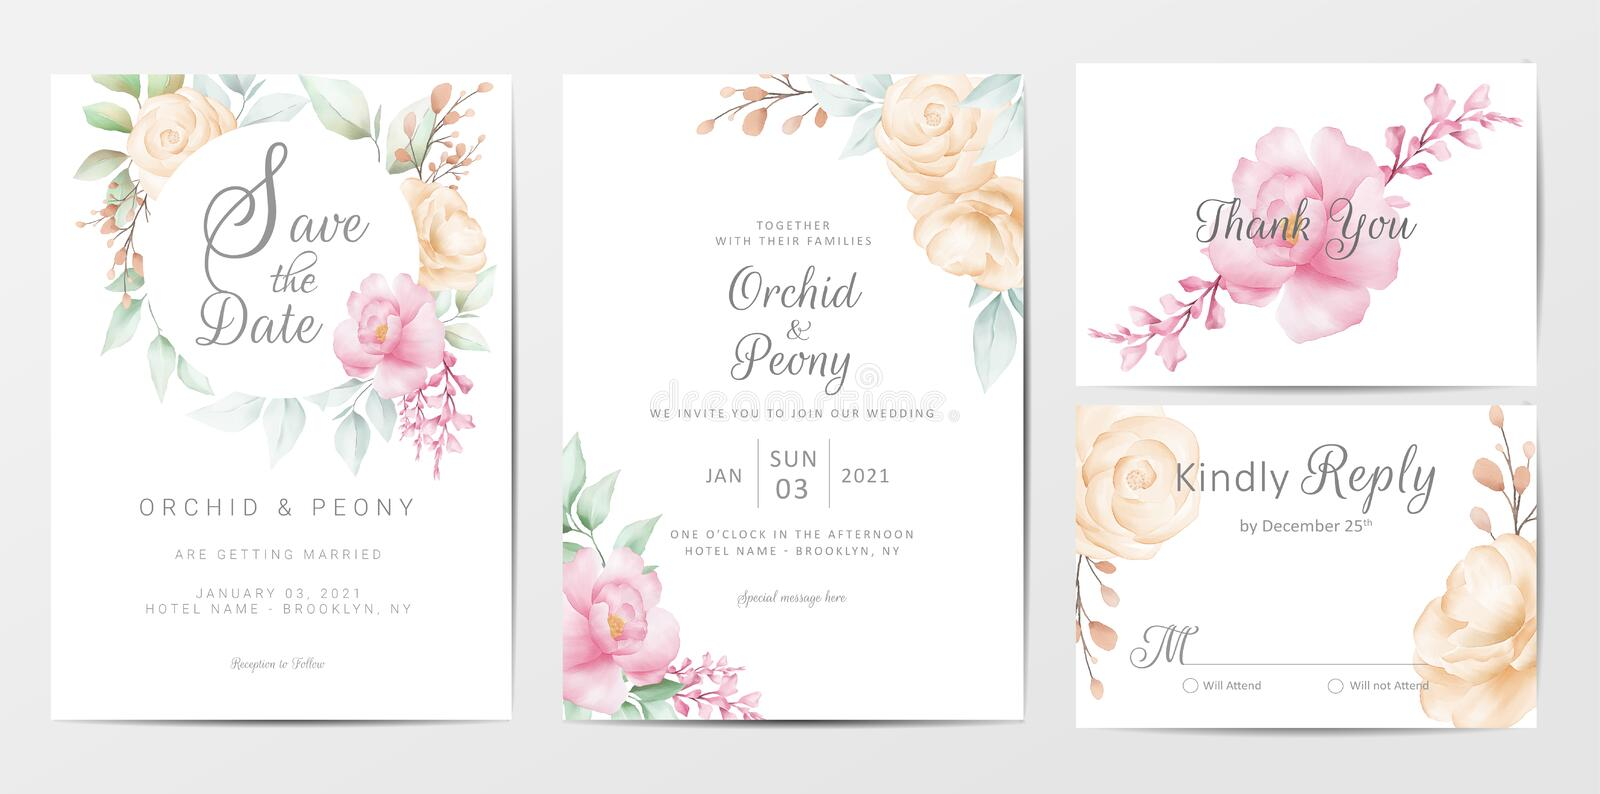 Wedding invitation cards template set of elegant watercolor flowers. Fully editable vector template, save the date, invitation, greeting, thank you, and rsvp royalty free illustration